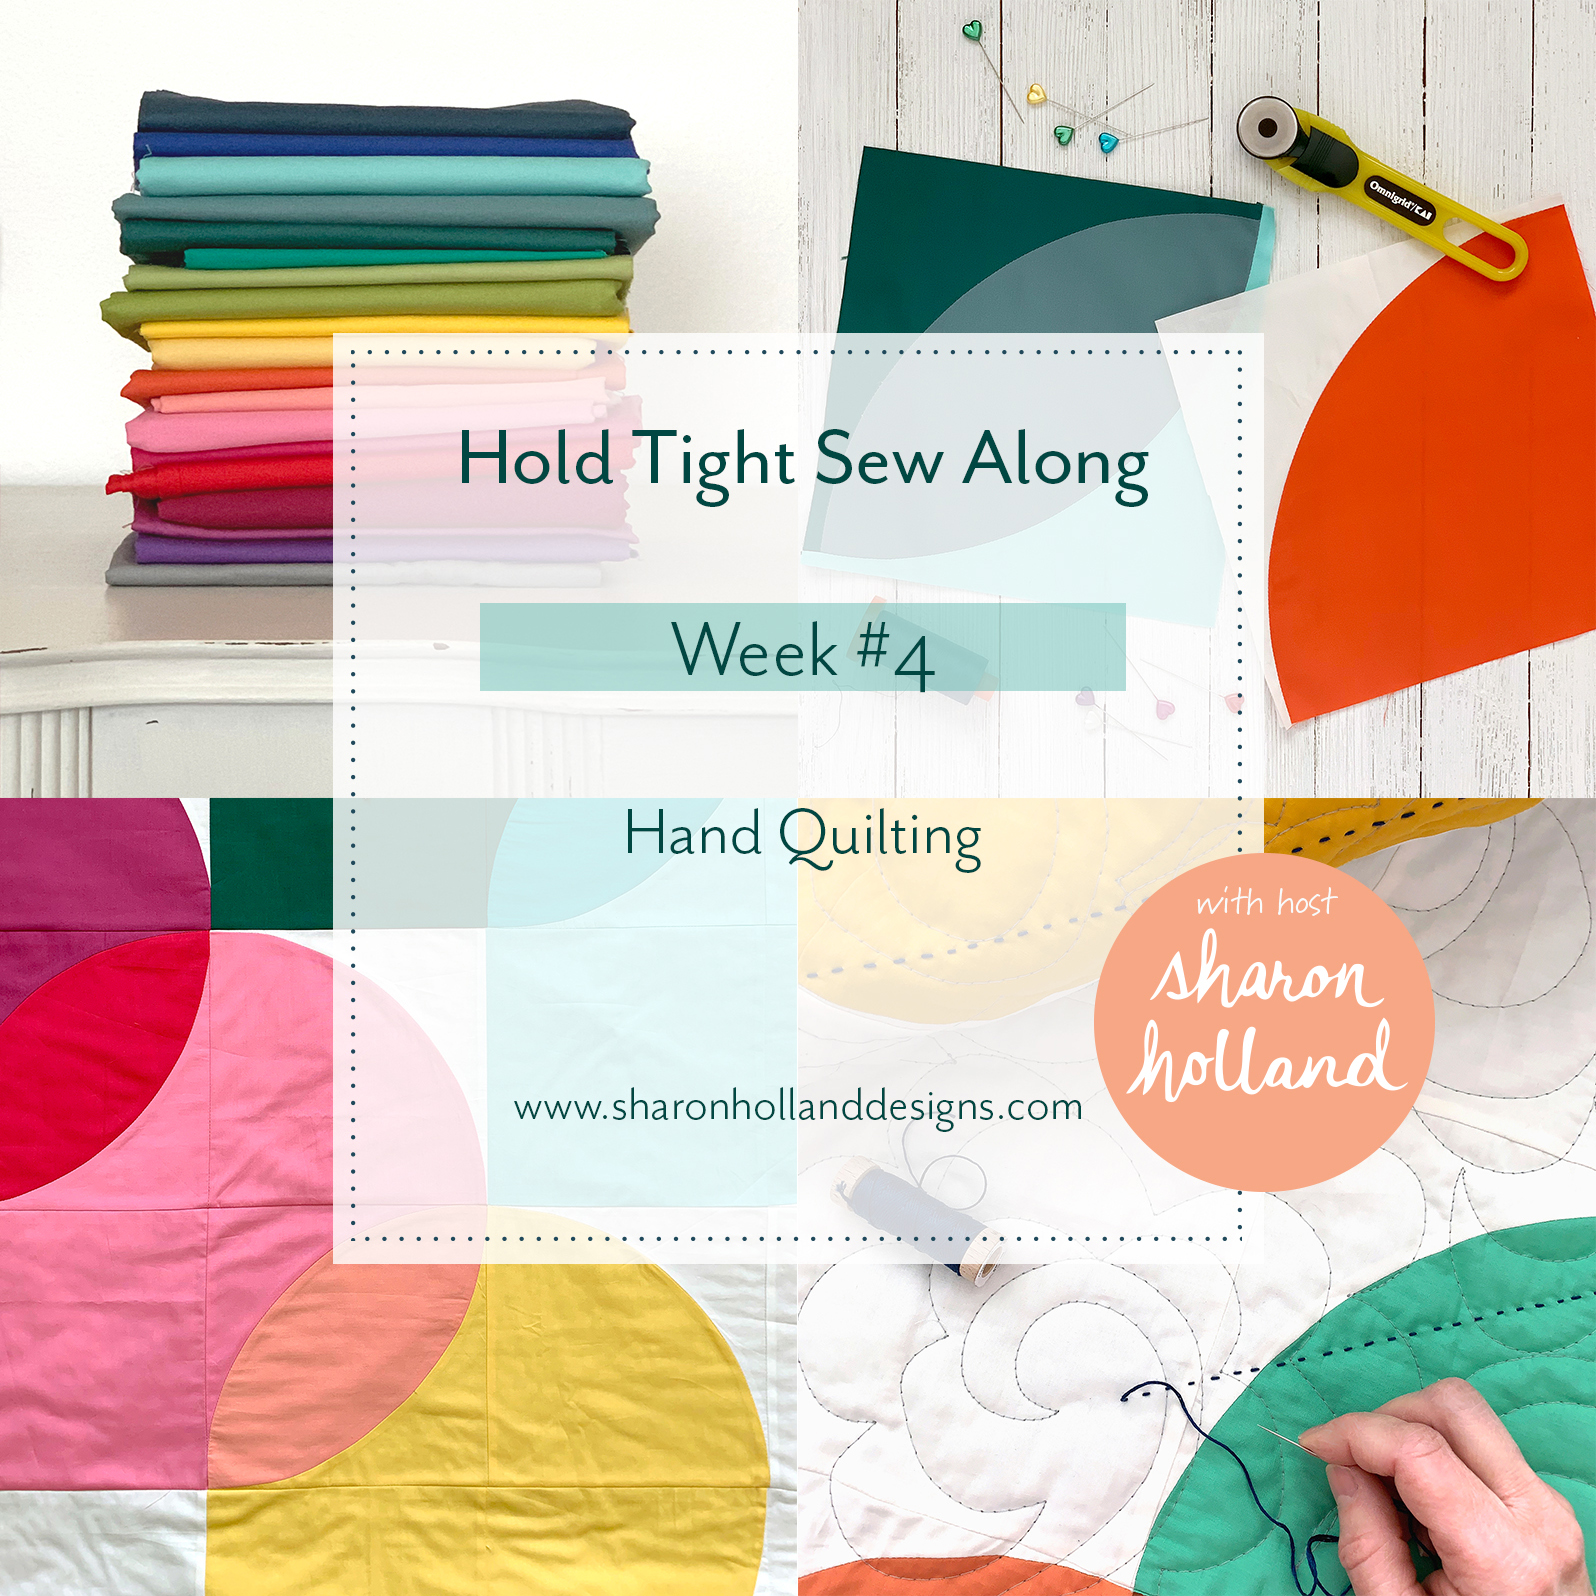 Hold Tight Sew Along Hand Quilting.jpg